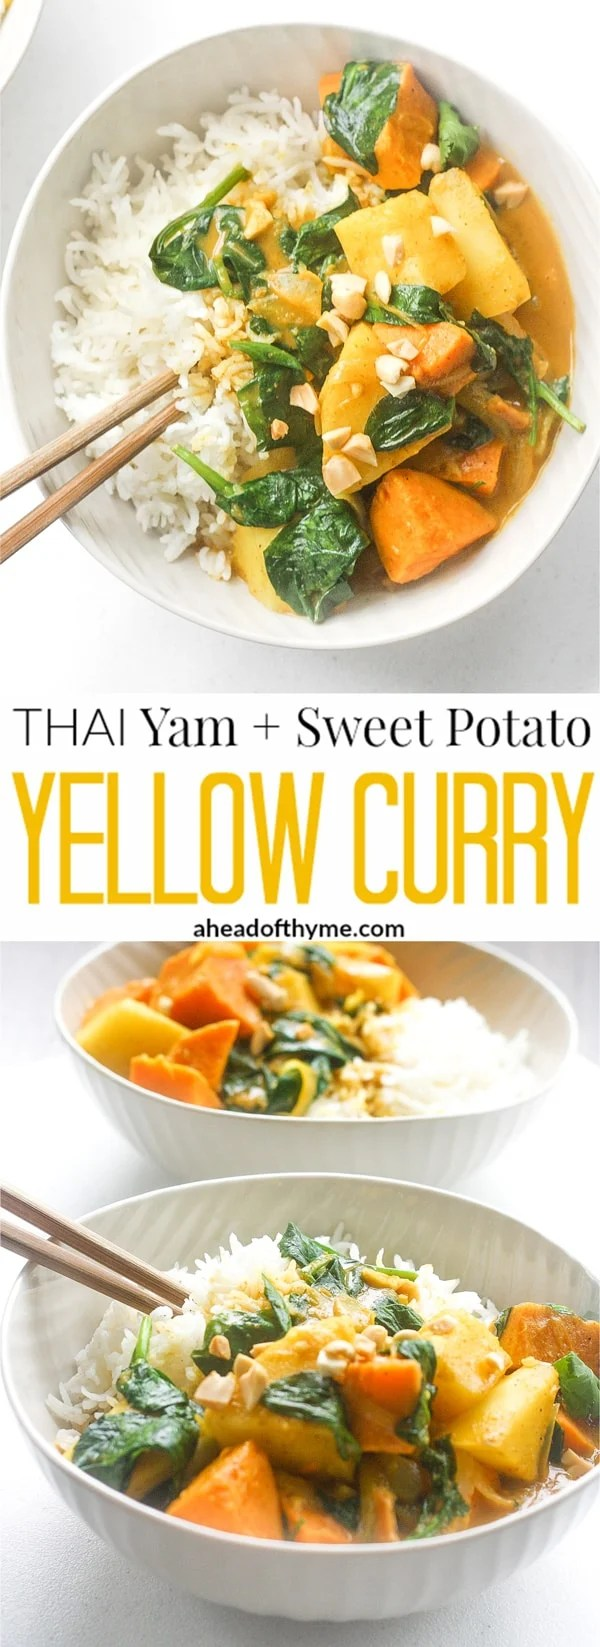 Cuisine Yam Thai Yam And Sweet Potato Yellow Curry